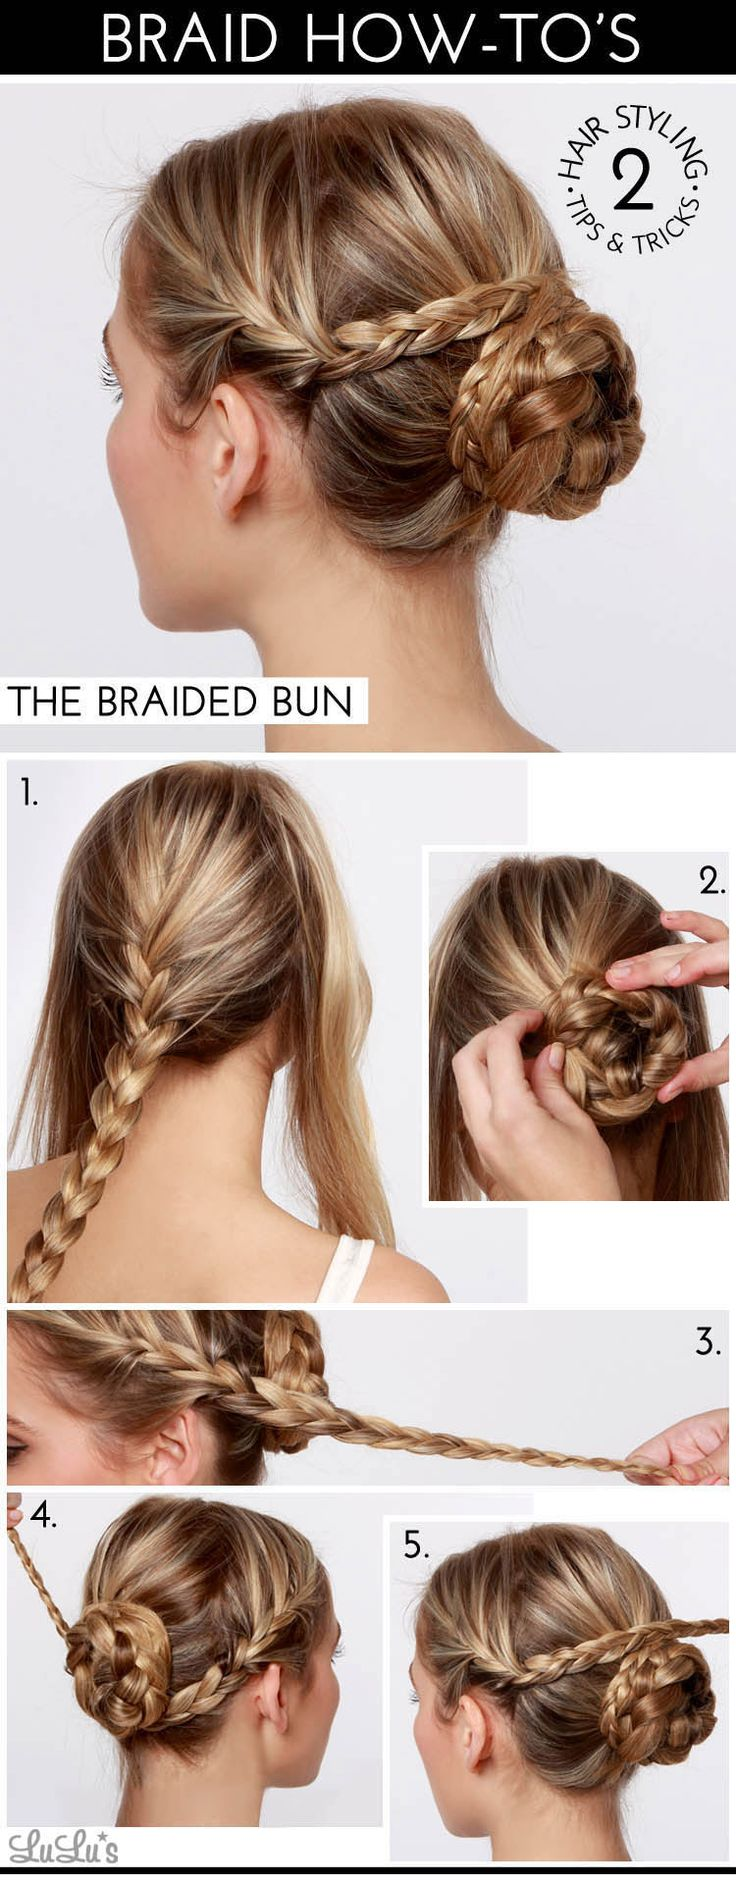 Lovely braided bun. Click on the photo for a better look at the how-tos.